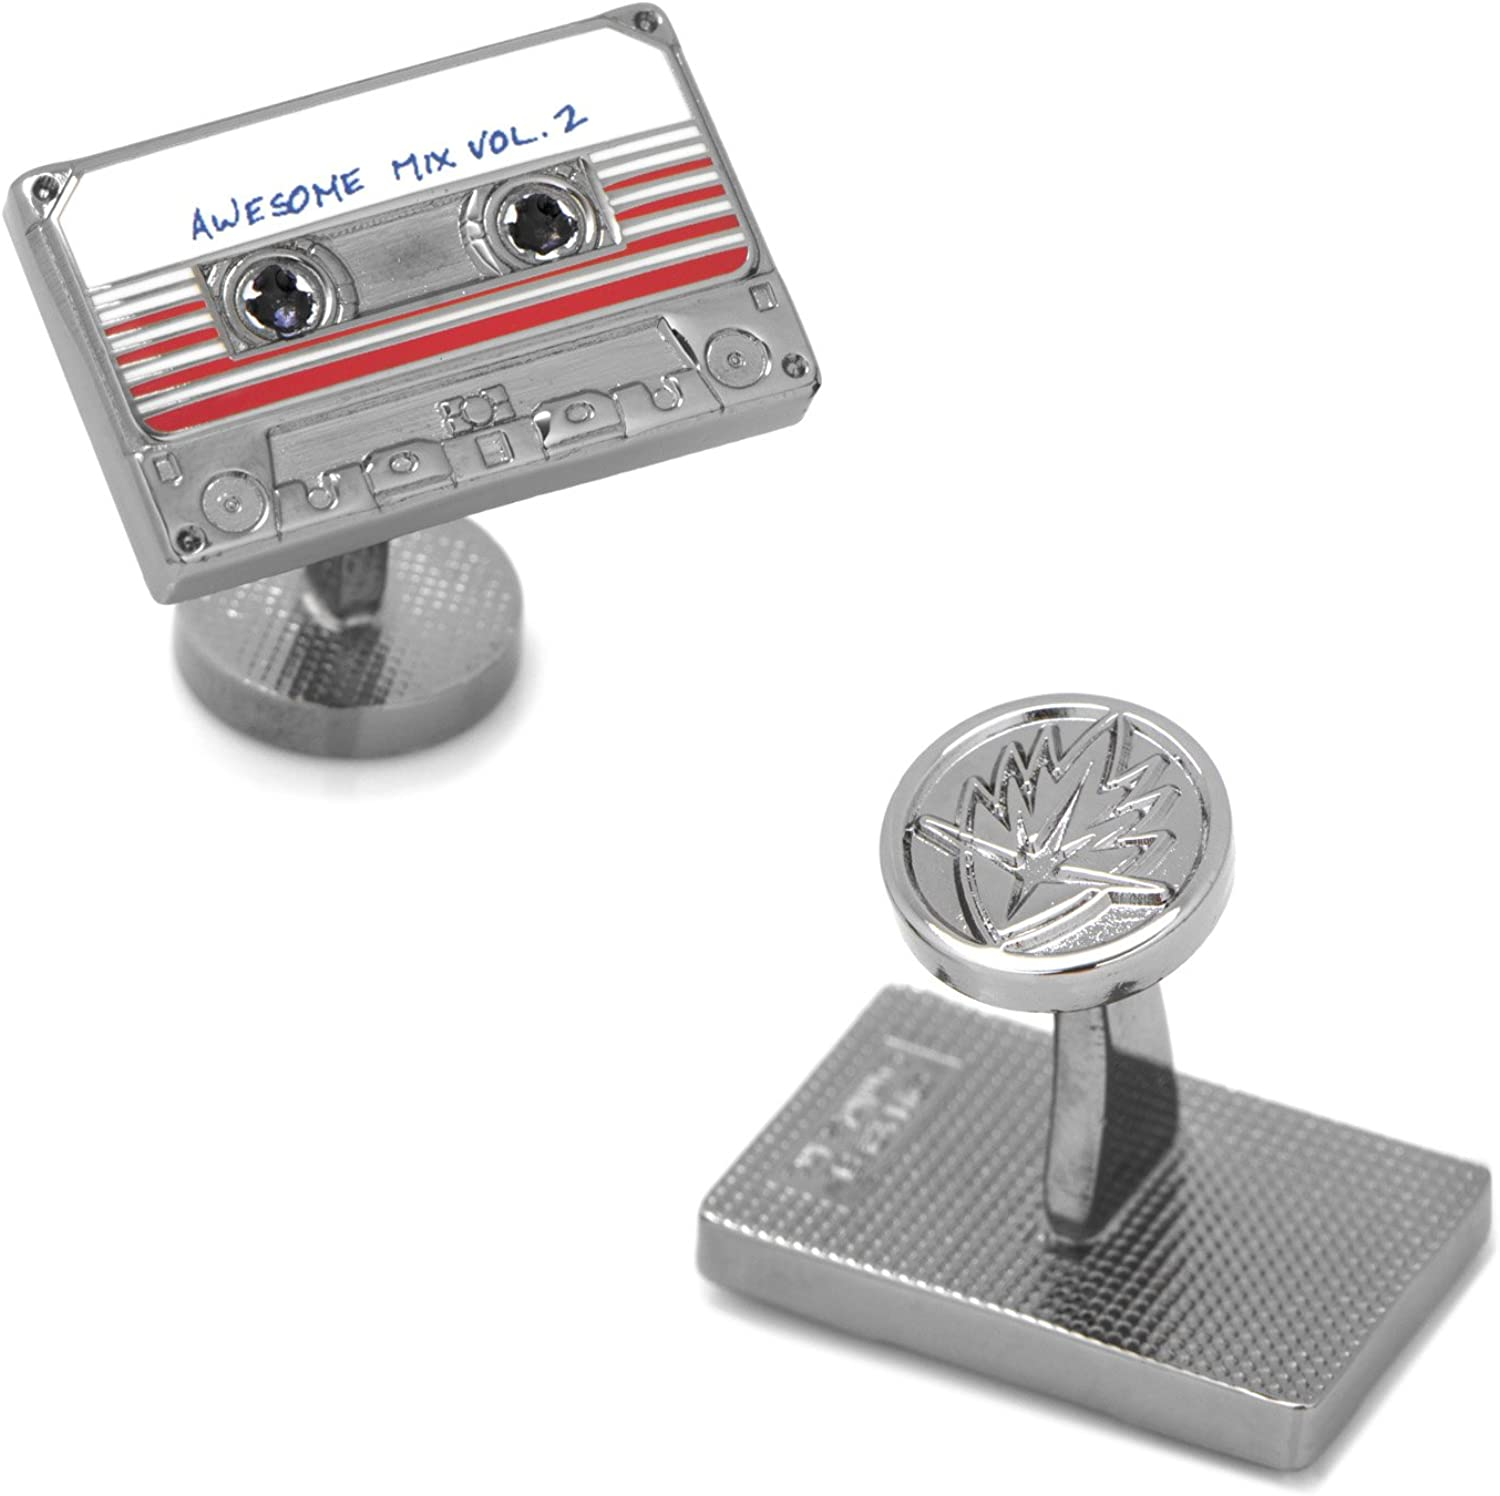 Awesome Mix Tape No. 2 Cufflinks